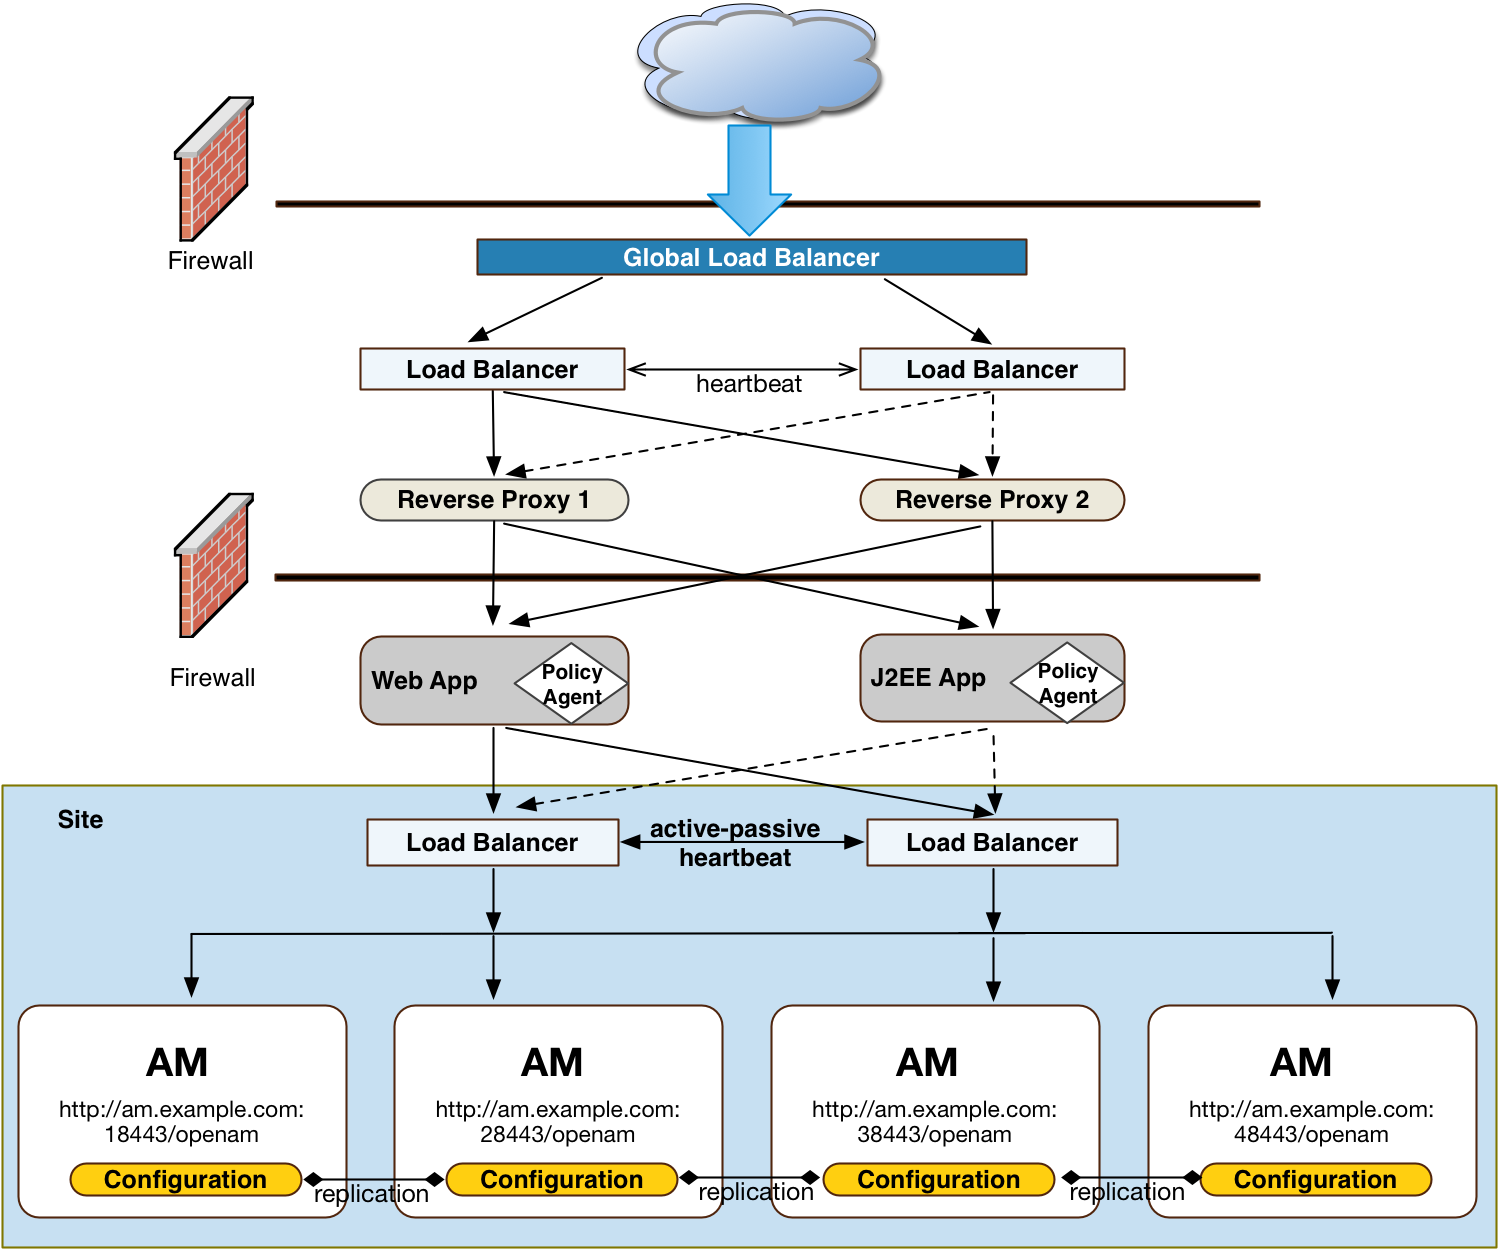 Site Deployment With Multiple Load Balancers